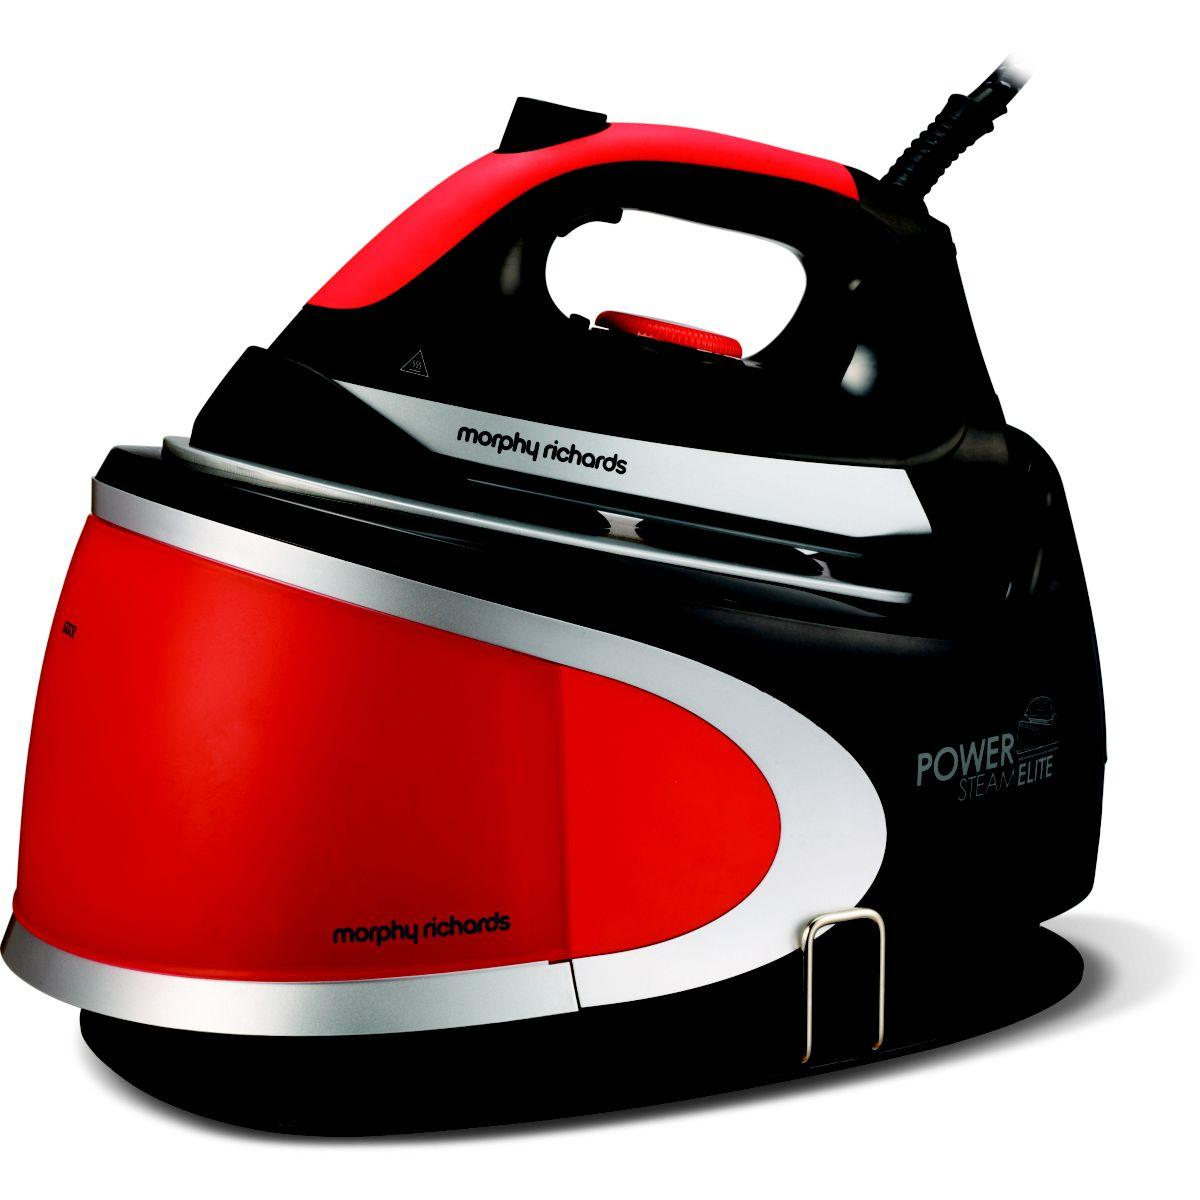 Centrale vapeur illimitée morphy richards power steamelite - 3% de remise : code pam3 (photo)